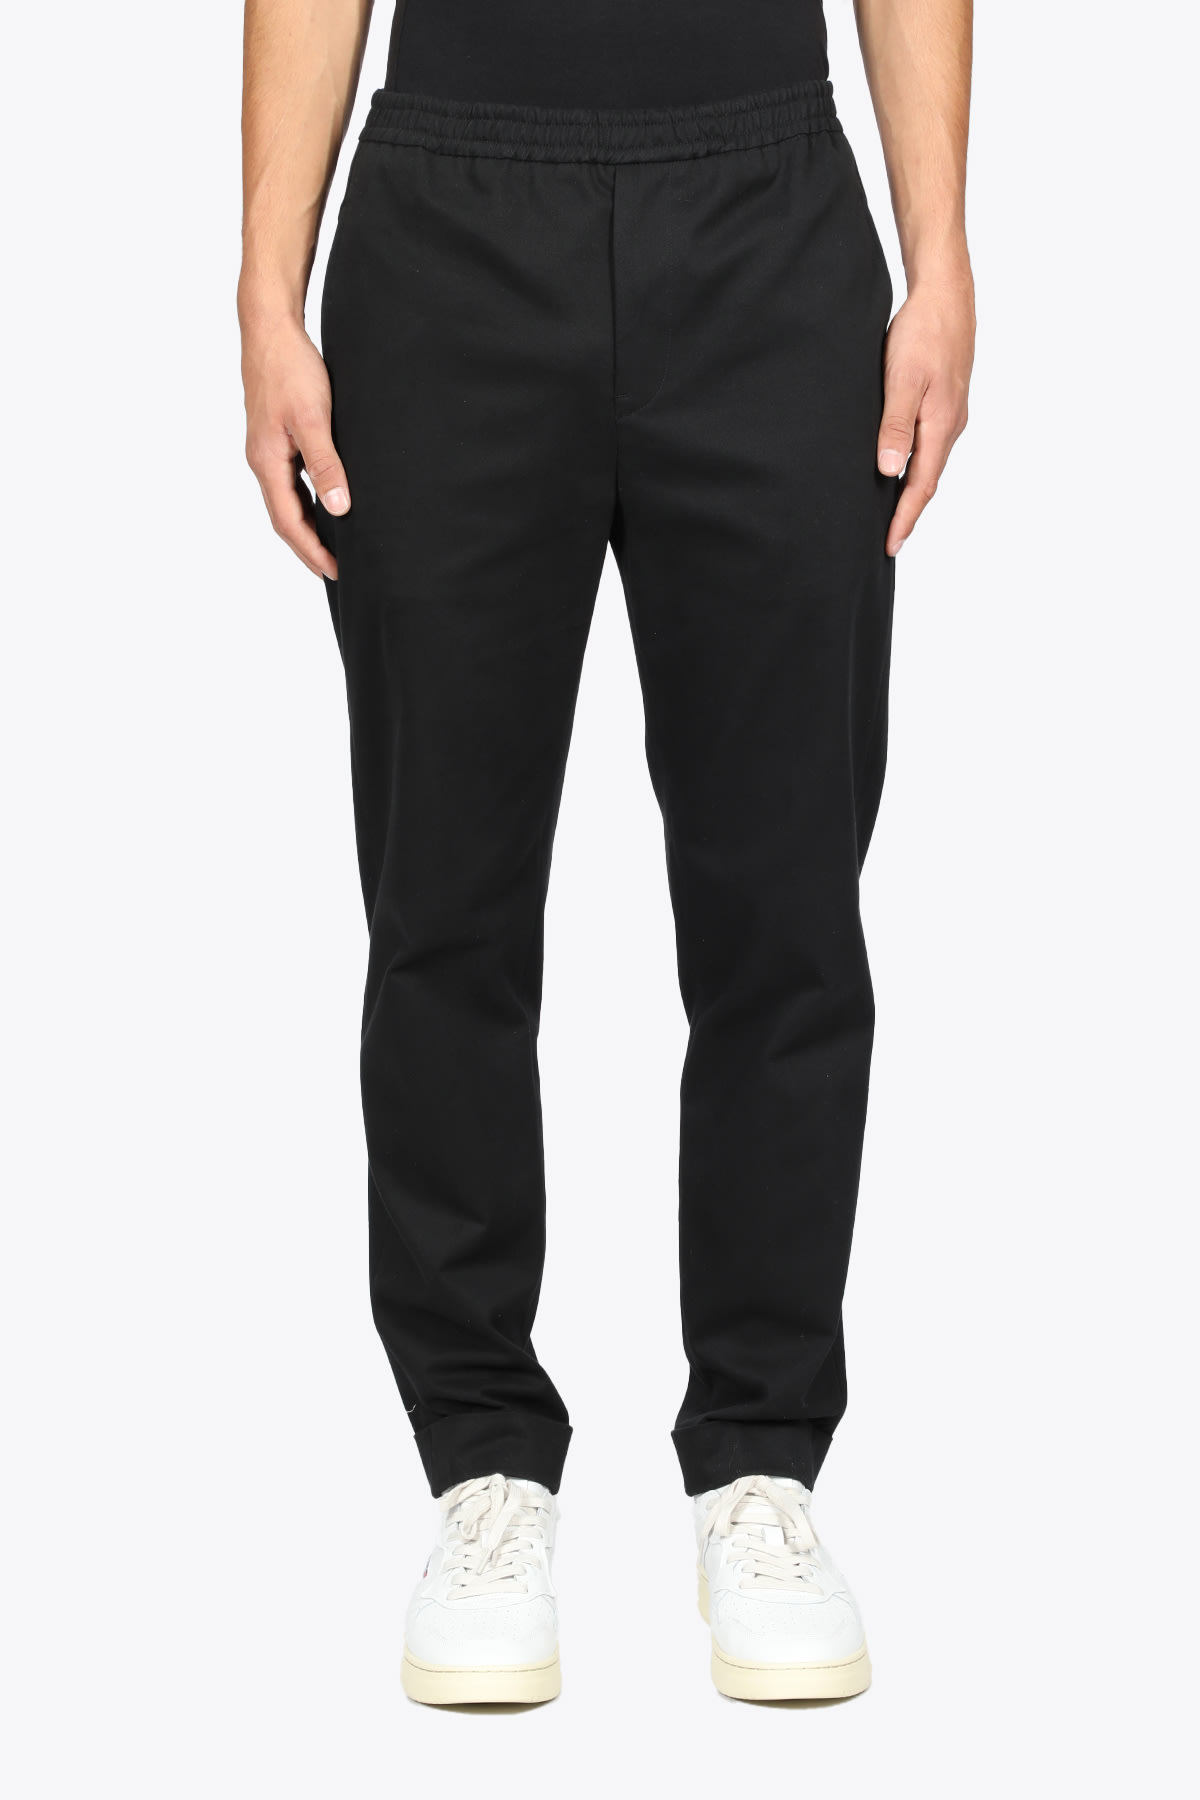 Black Cotton Pant With Elastic Waistband